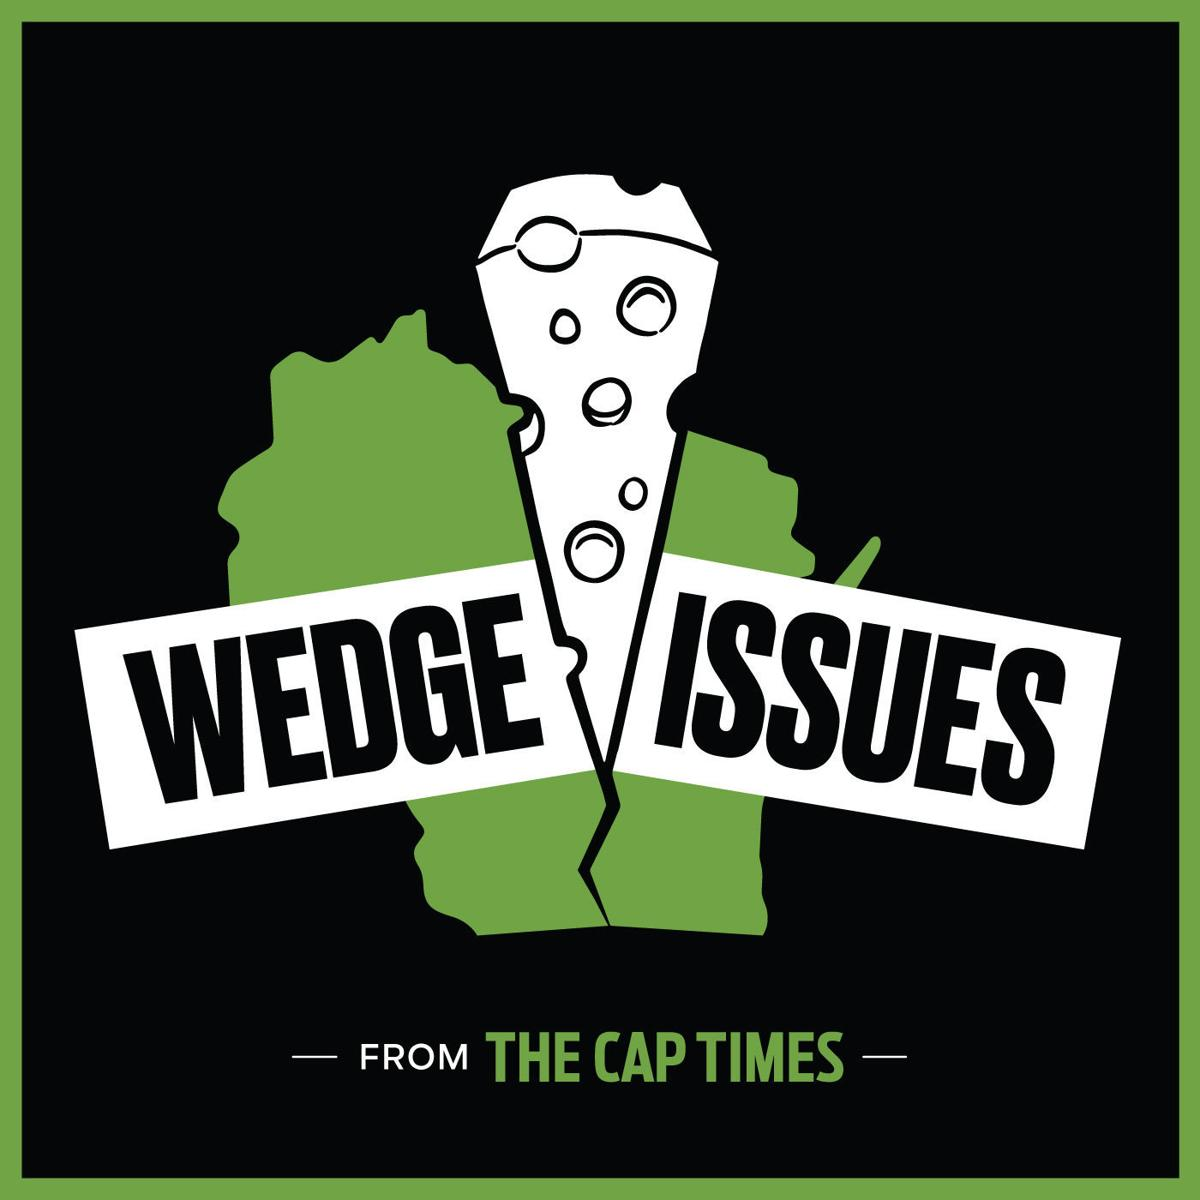 wedge issues logo (copy)